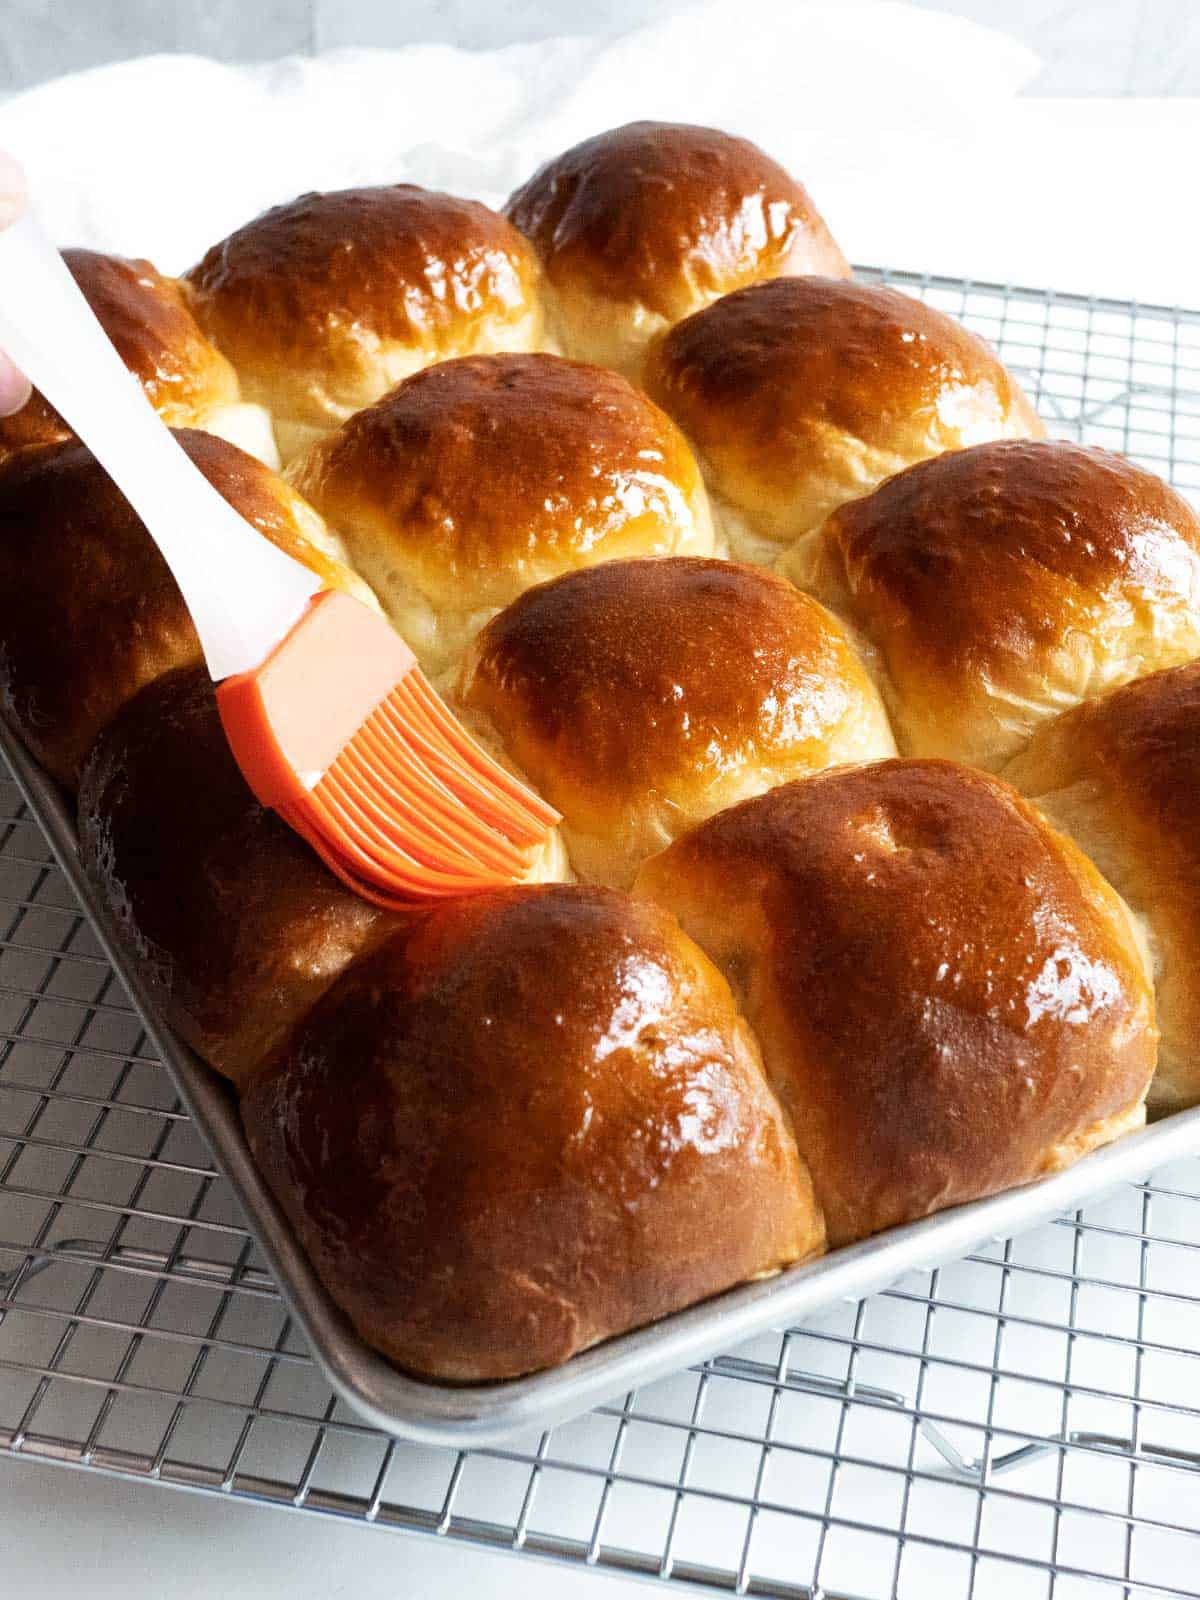 Brushing the cooked rolls with melted butter.